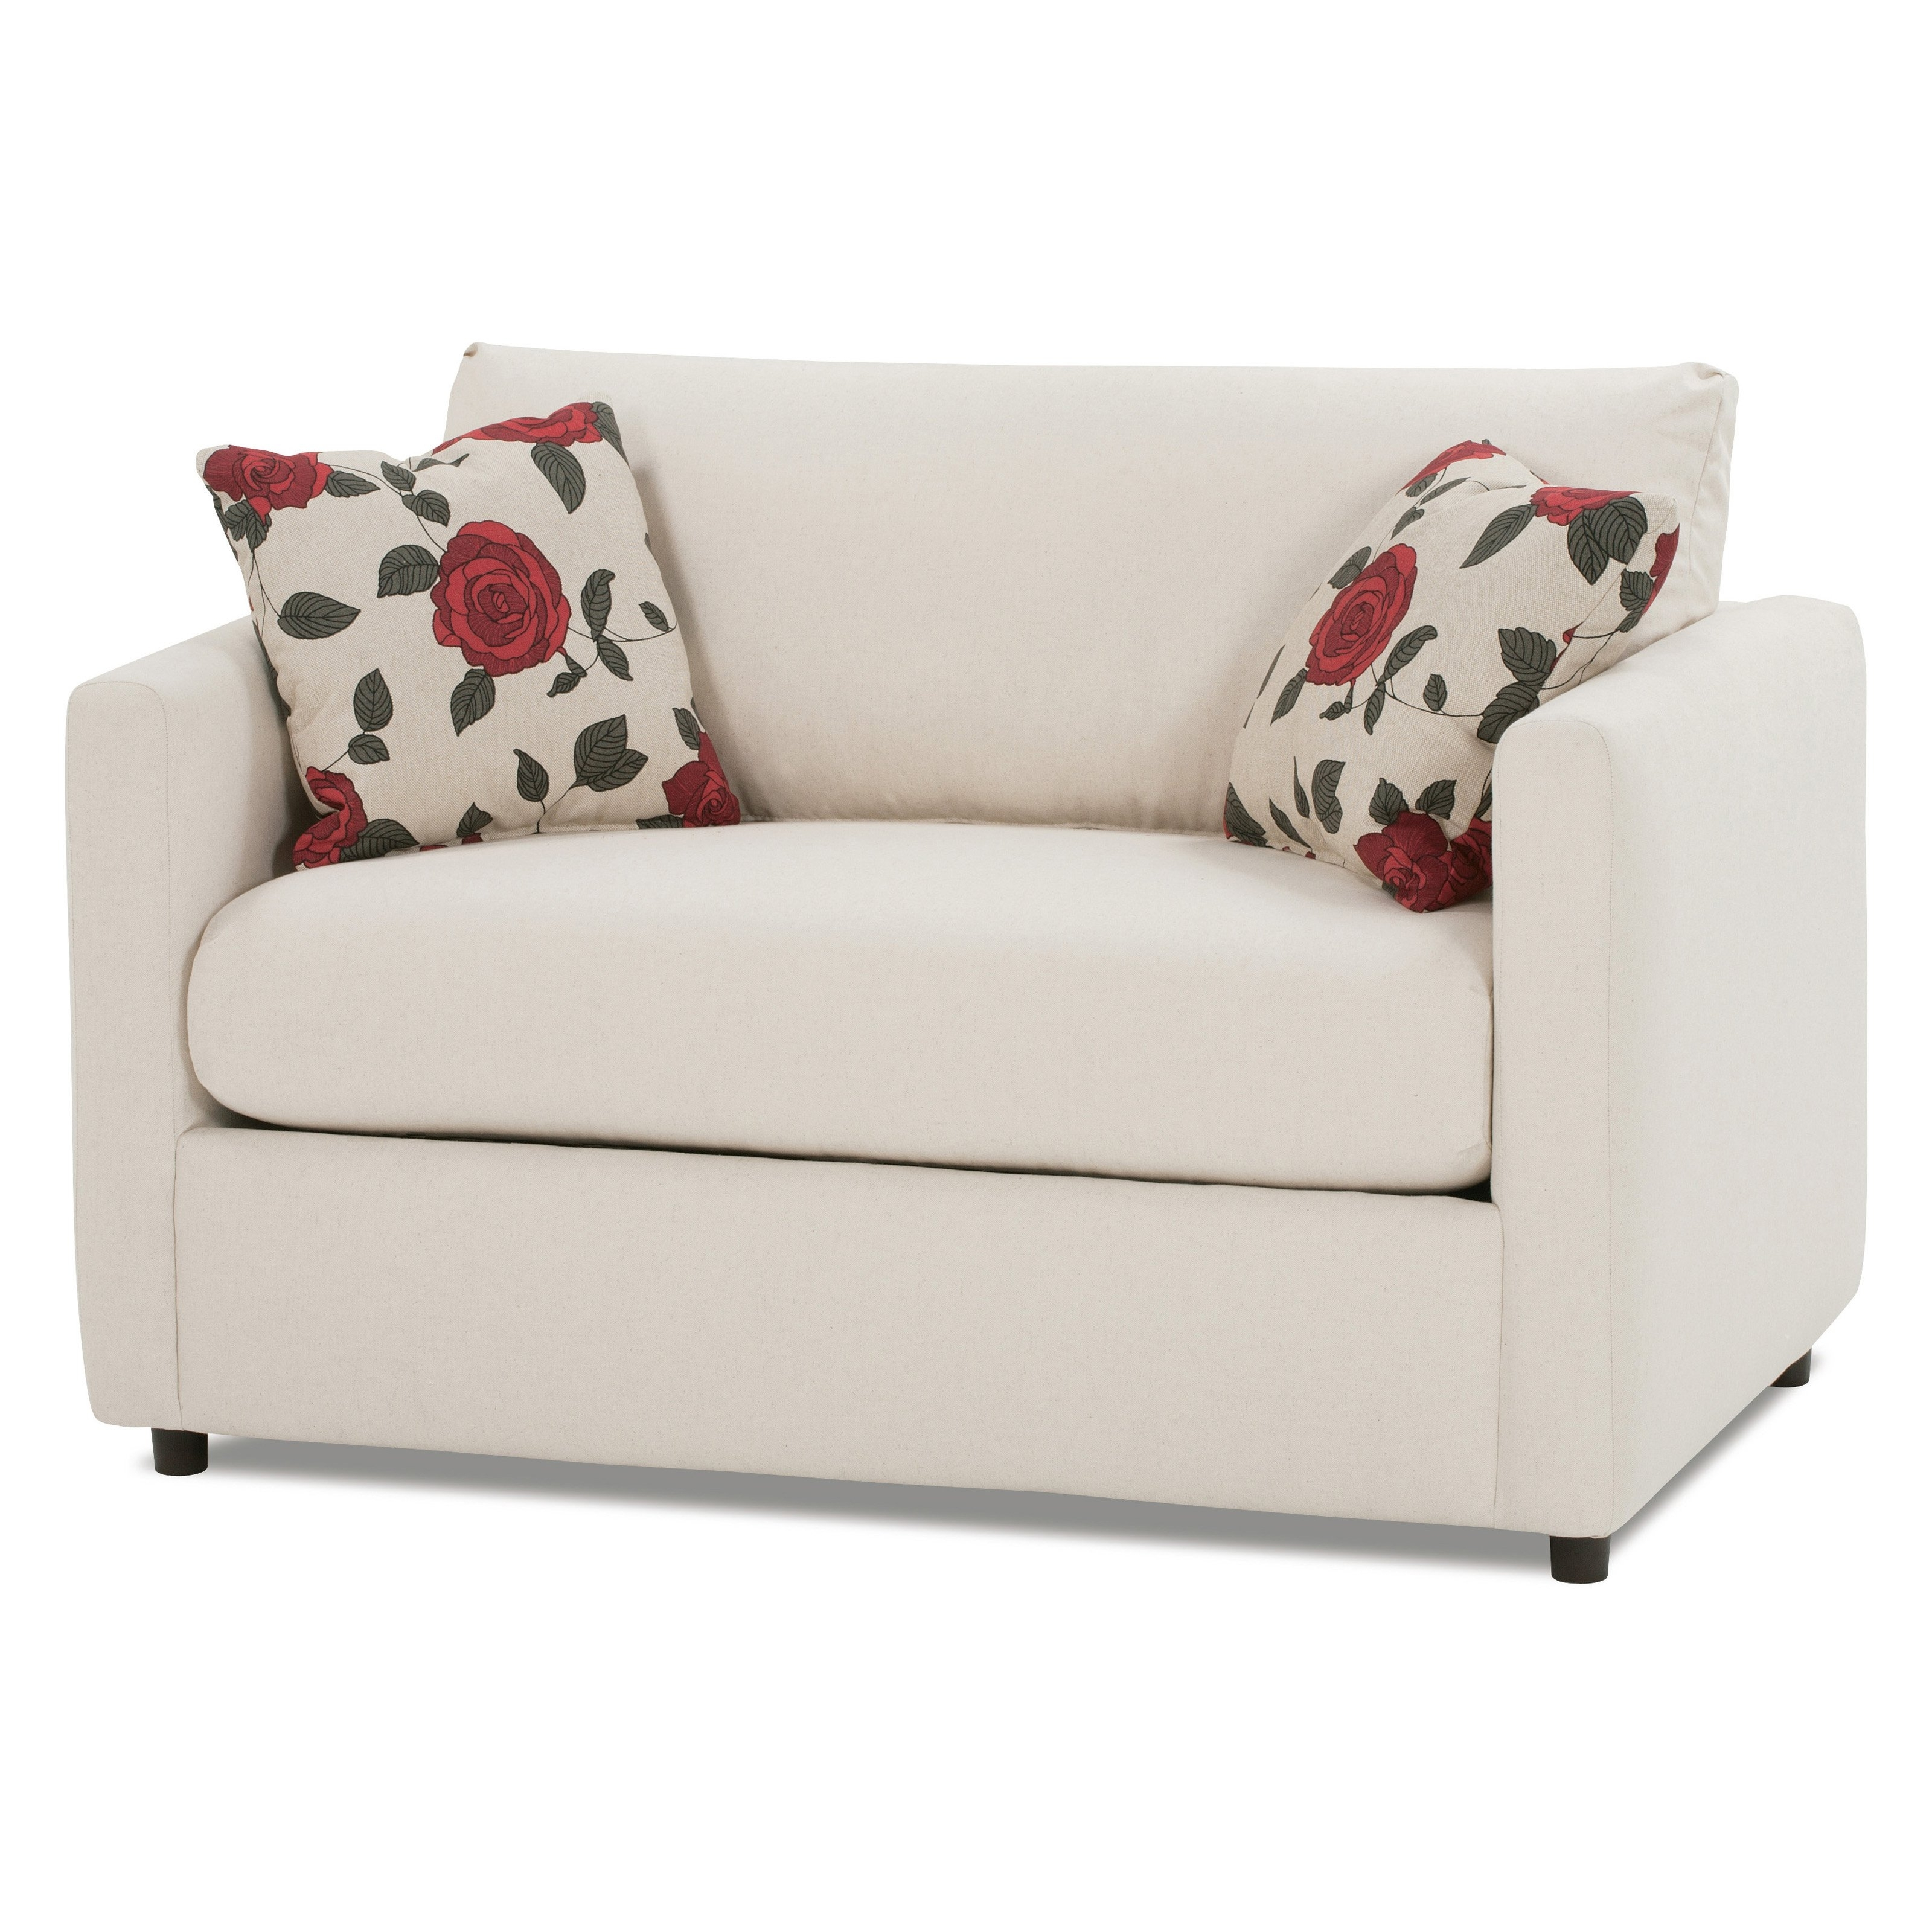 Twin Sofa Chairs In Most Up To Date White Color Leather Twin Size Sleeper Sofa With Storage And Pillow (View 3 of 15)